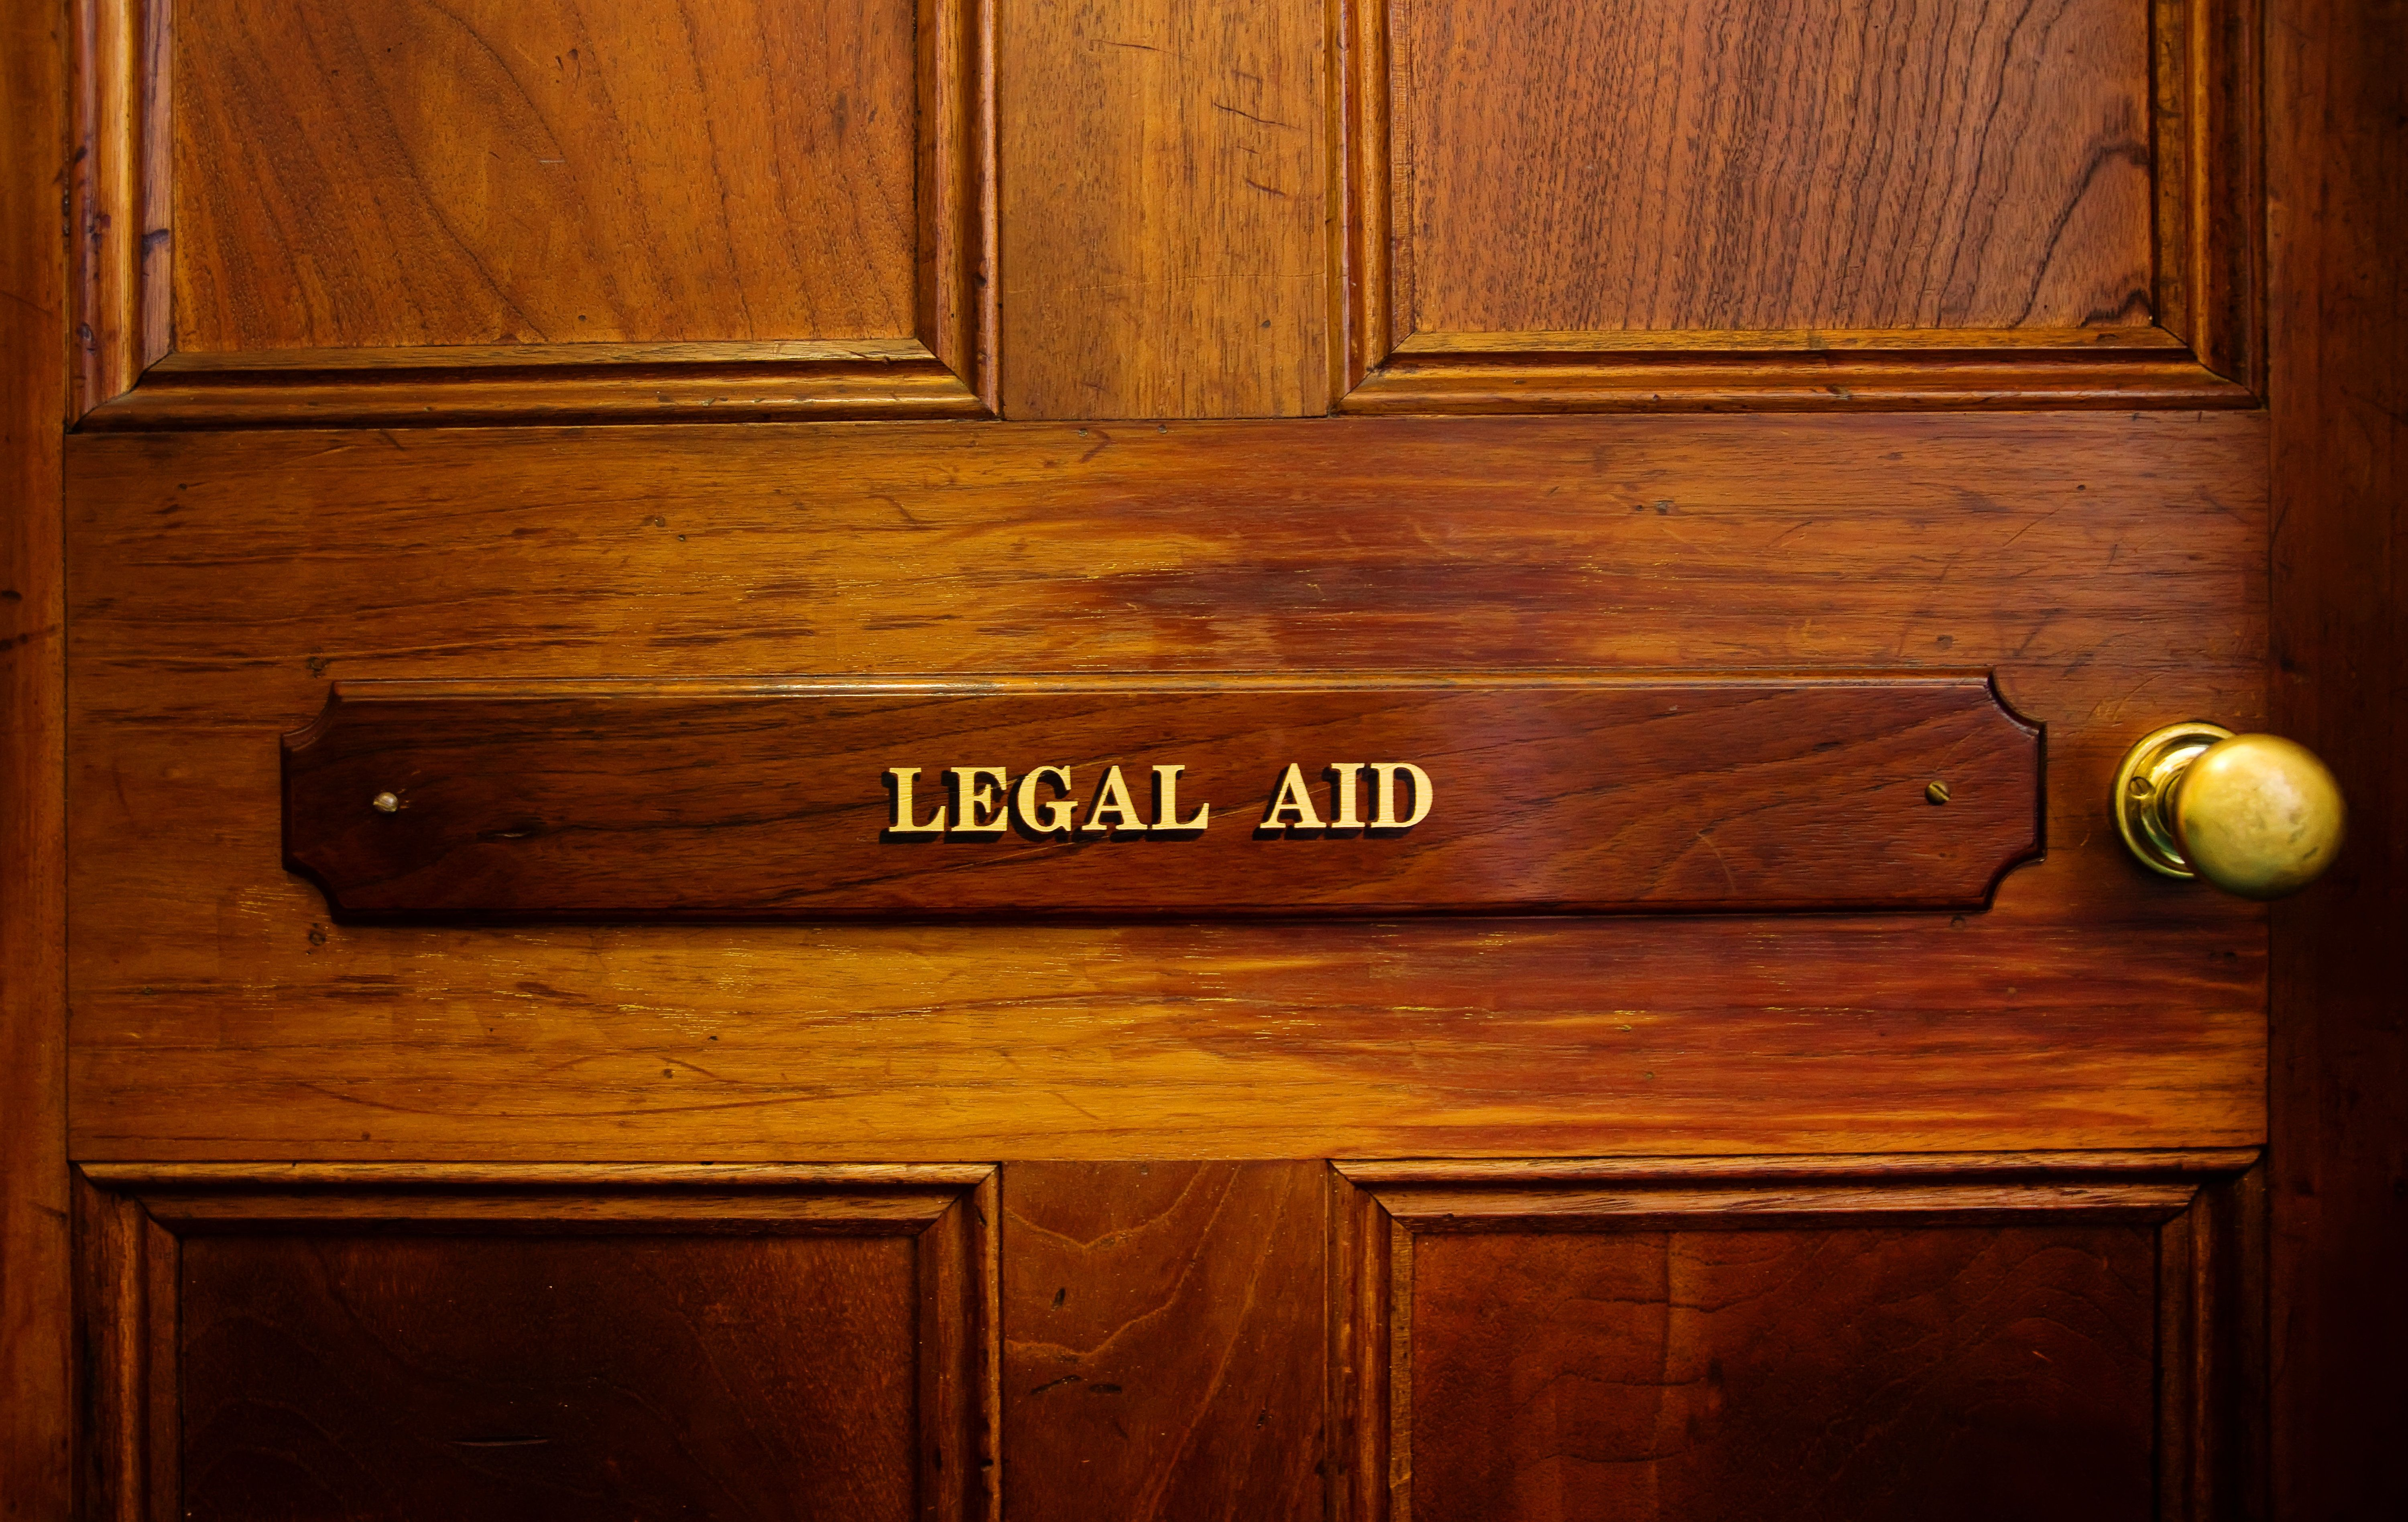 The Legal Services Corporation requested $502 million for fiscal year 2017. The Trump budget released Thursday suggests Congr